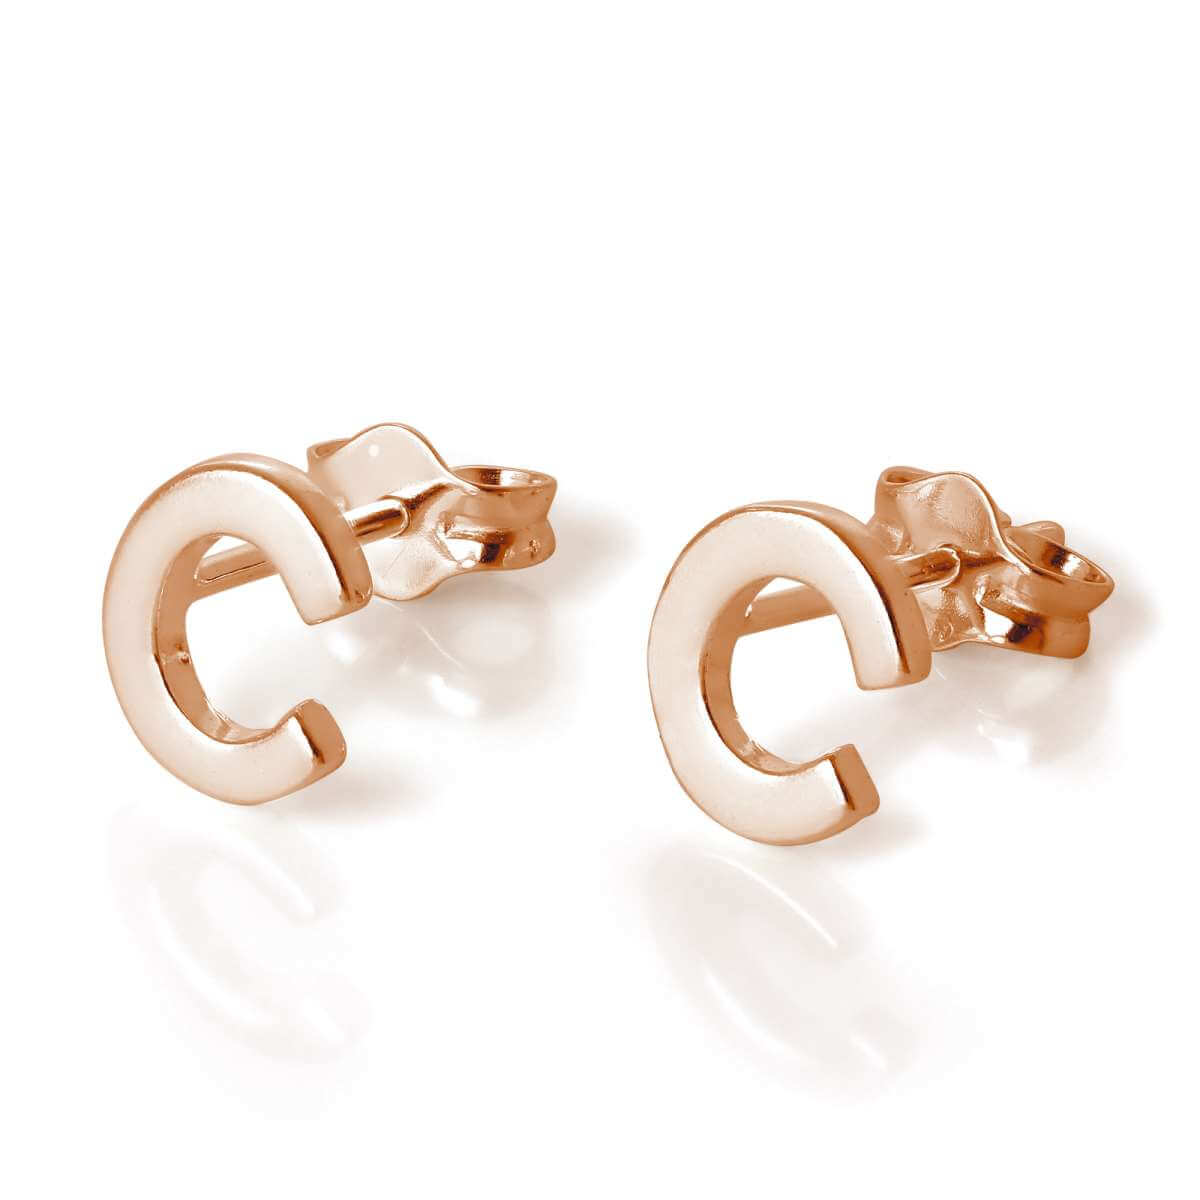 Rose Gold Plated Sterling Silver Letter C Stud Earrings